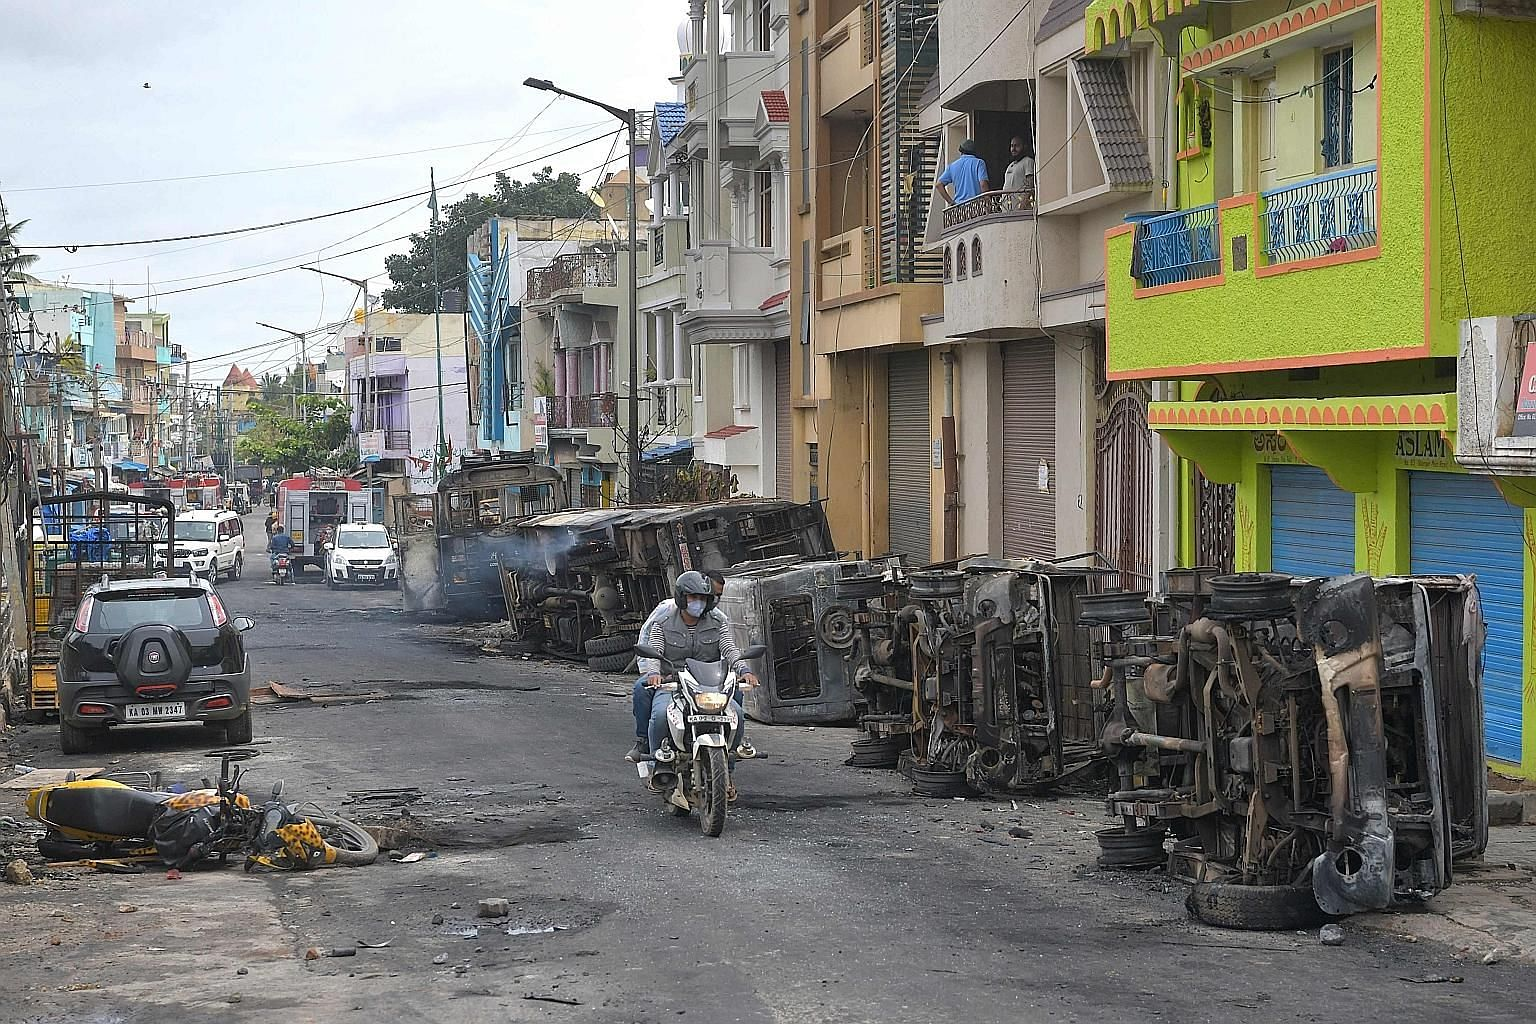 Burnt police vehicles littered the street in Bengaluru yesterday following violence that broke out overnight after a Facebook post about the Prophet Muhammad sparked riots. Unable to quell protesters with batons and tear gas, officers opened fire as